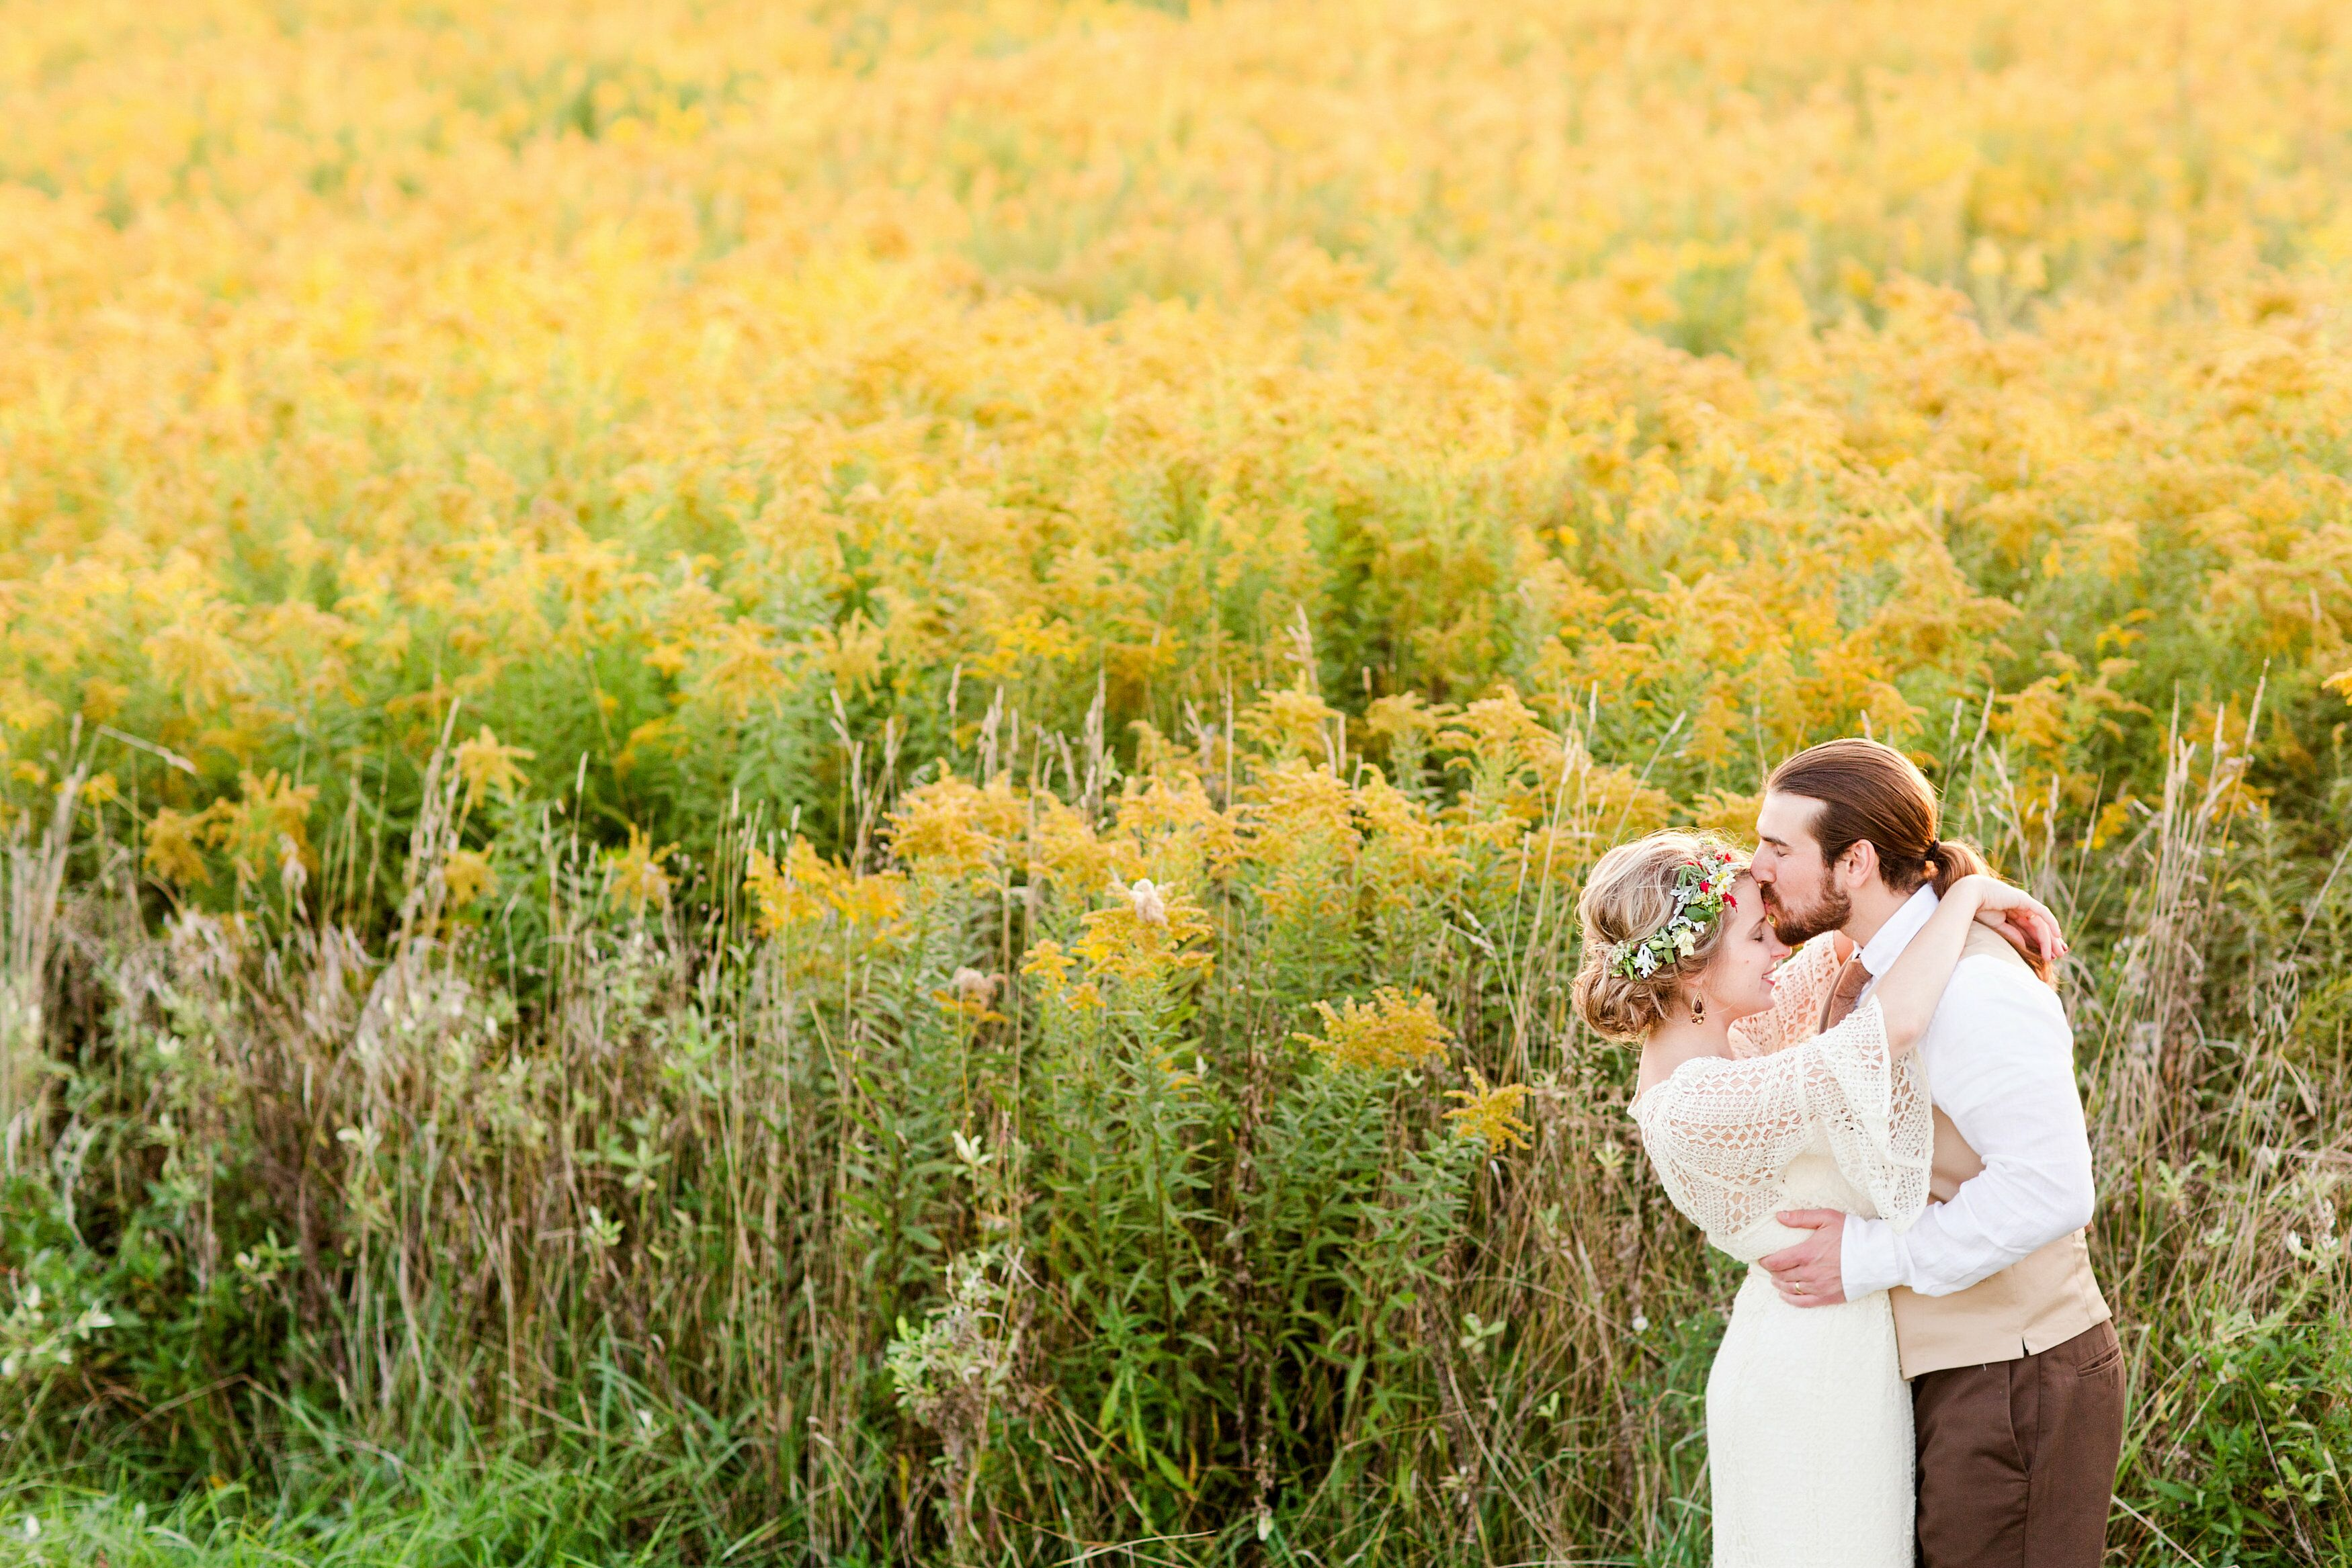 A Rustic, Boho-Chic Wedding at the Barn & Gazebo in Salem, Ohio